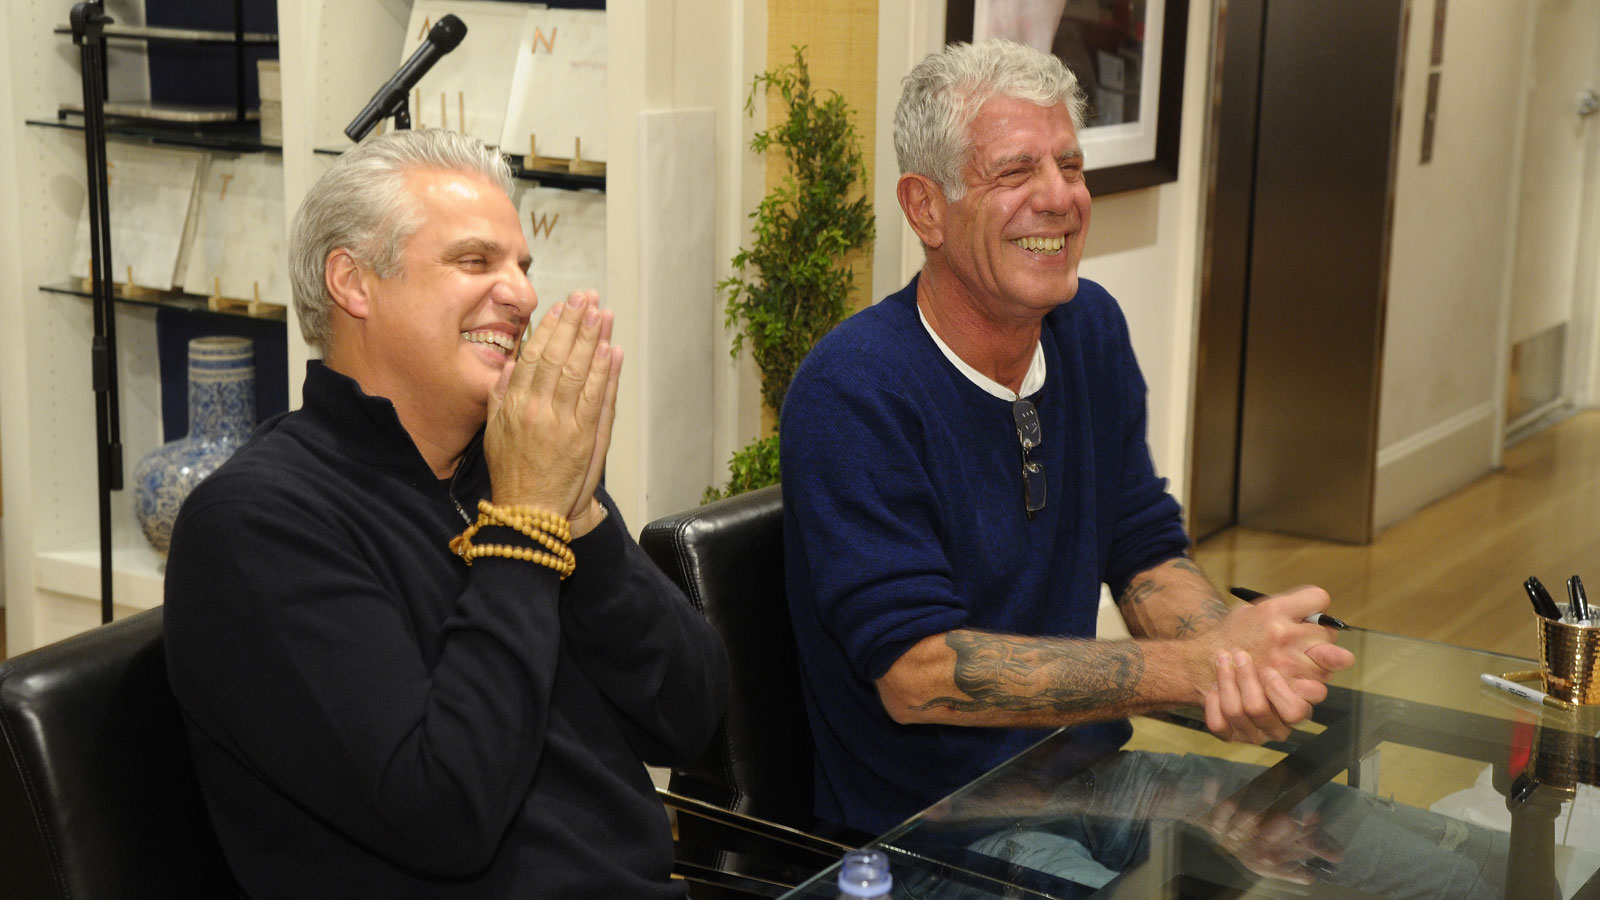 bourdain-ripert-bourdain-travel-companions-FT-BLOG0517.jpg